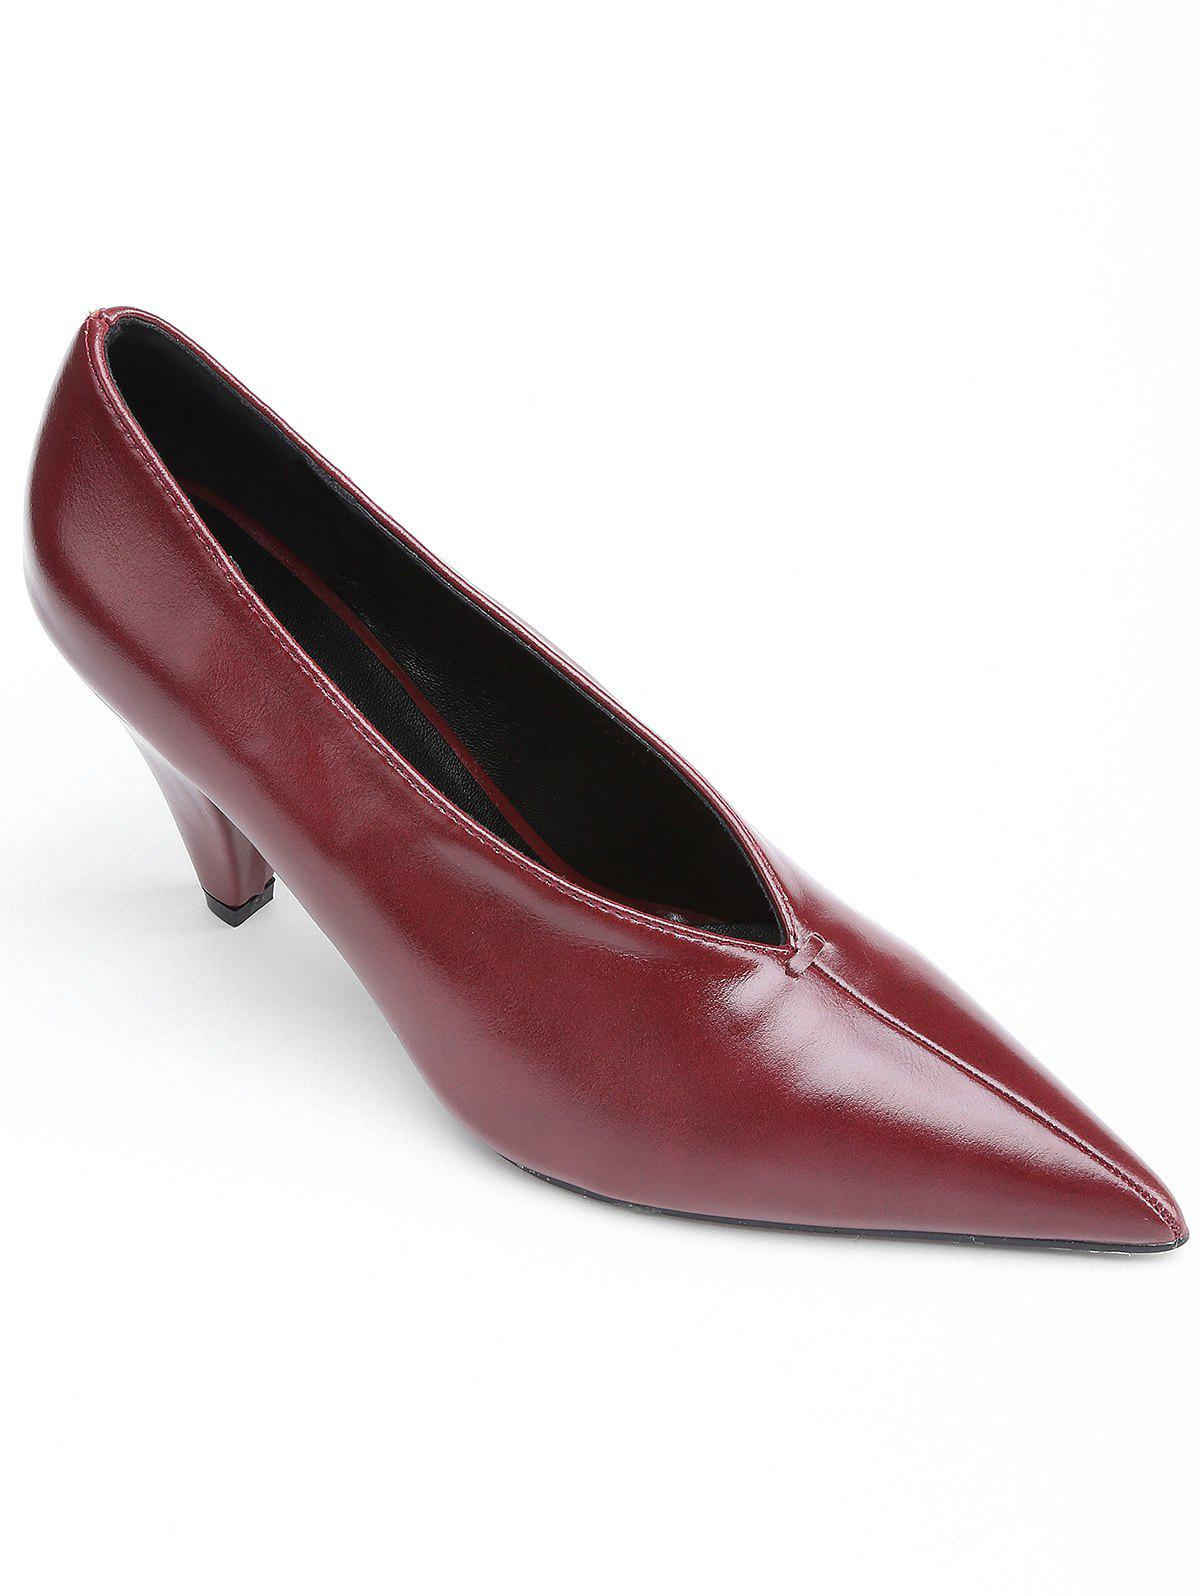 Point Toe V Cut High Heel Pumps - RED WINE 37